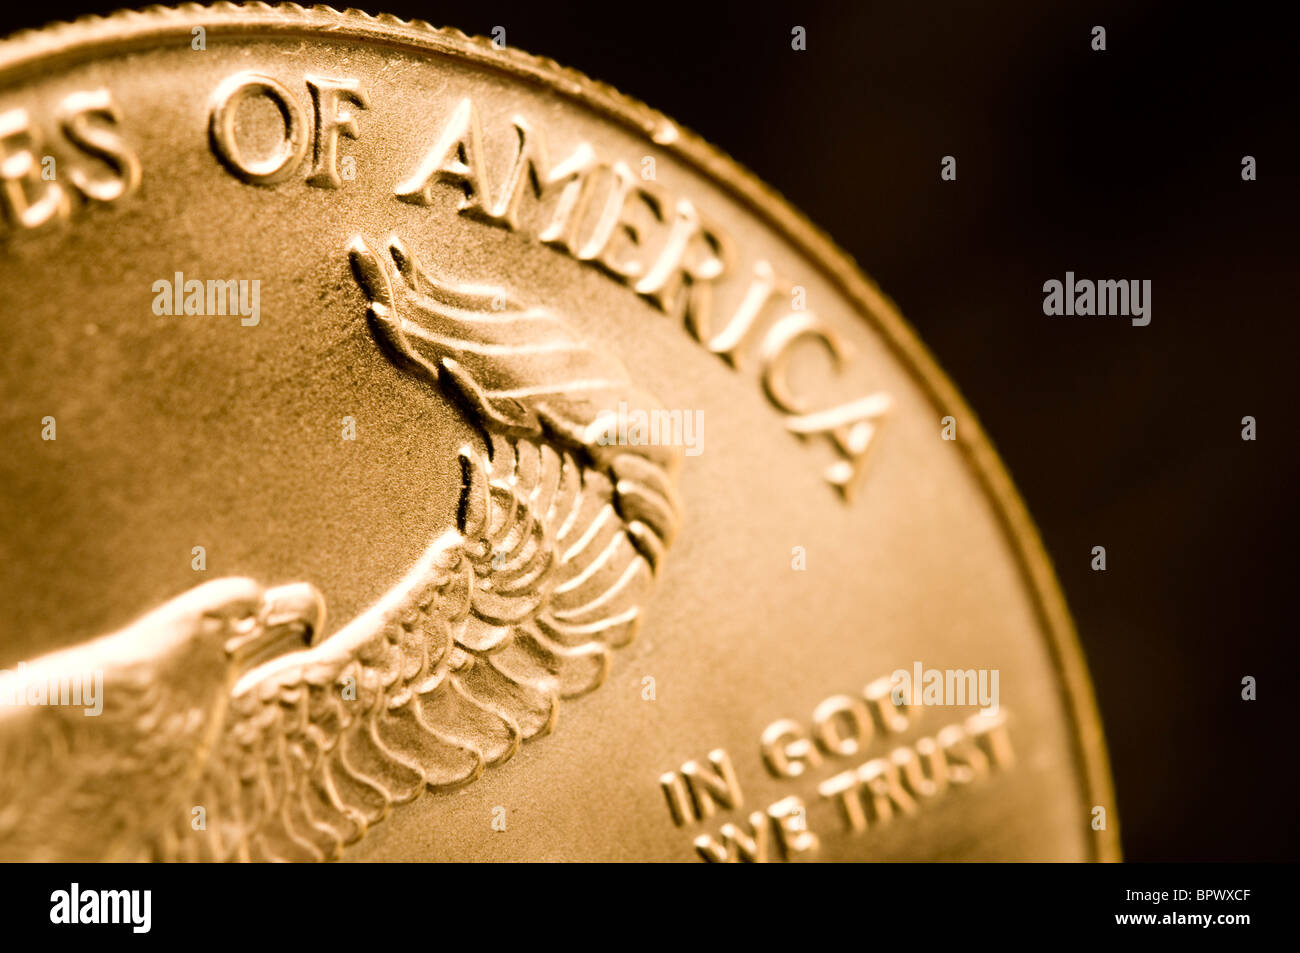 a gold bullion coin - Stock Image